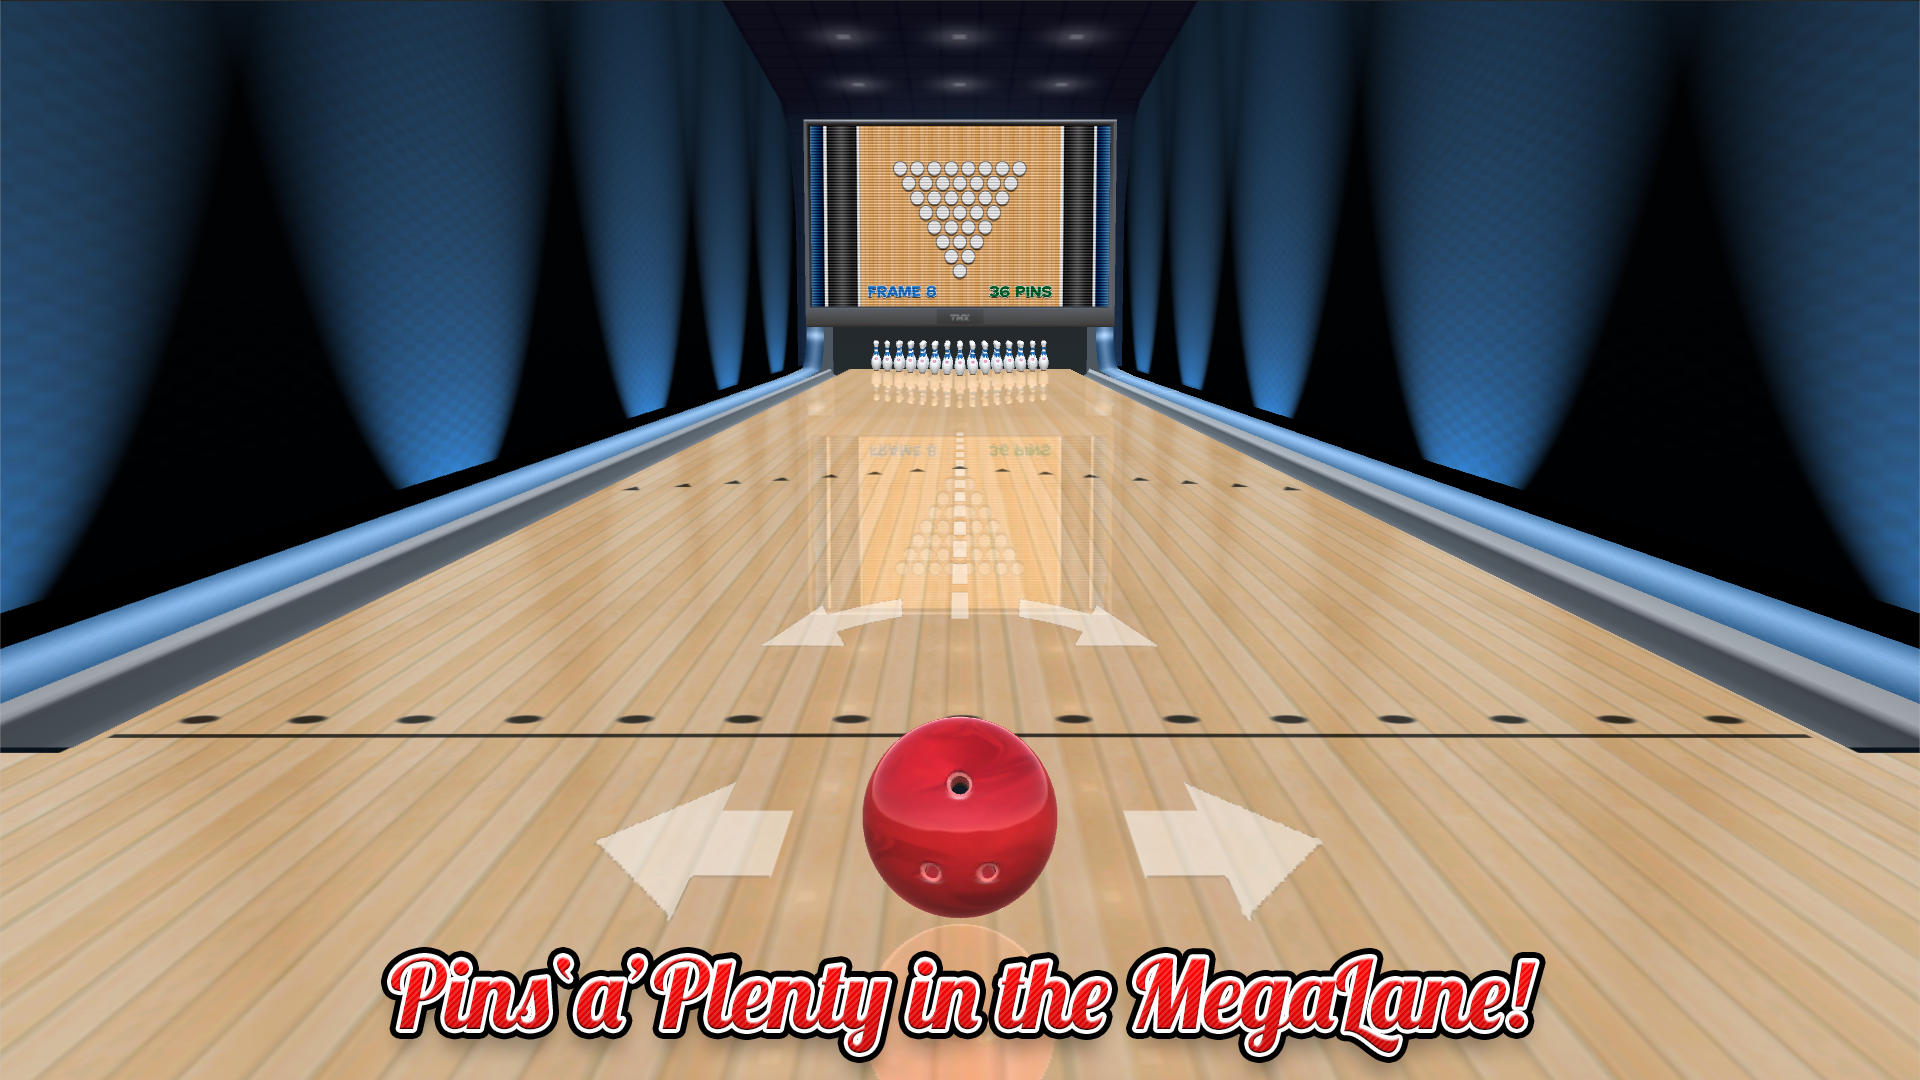 Strike! Ten Pin Bowling screenshot 17